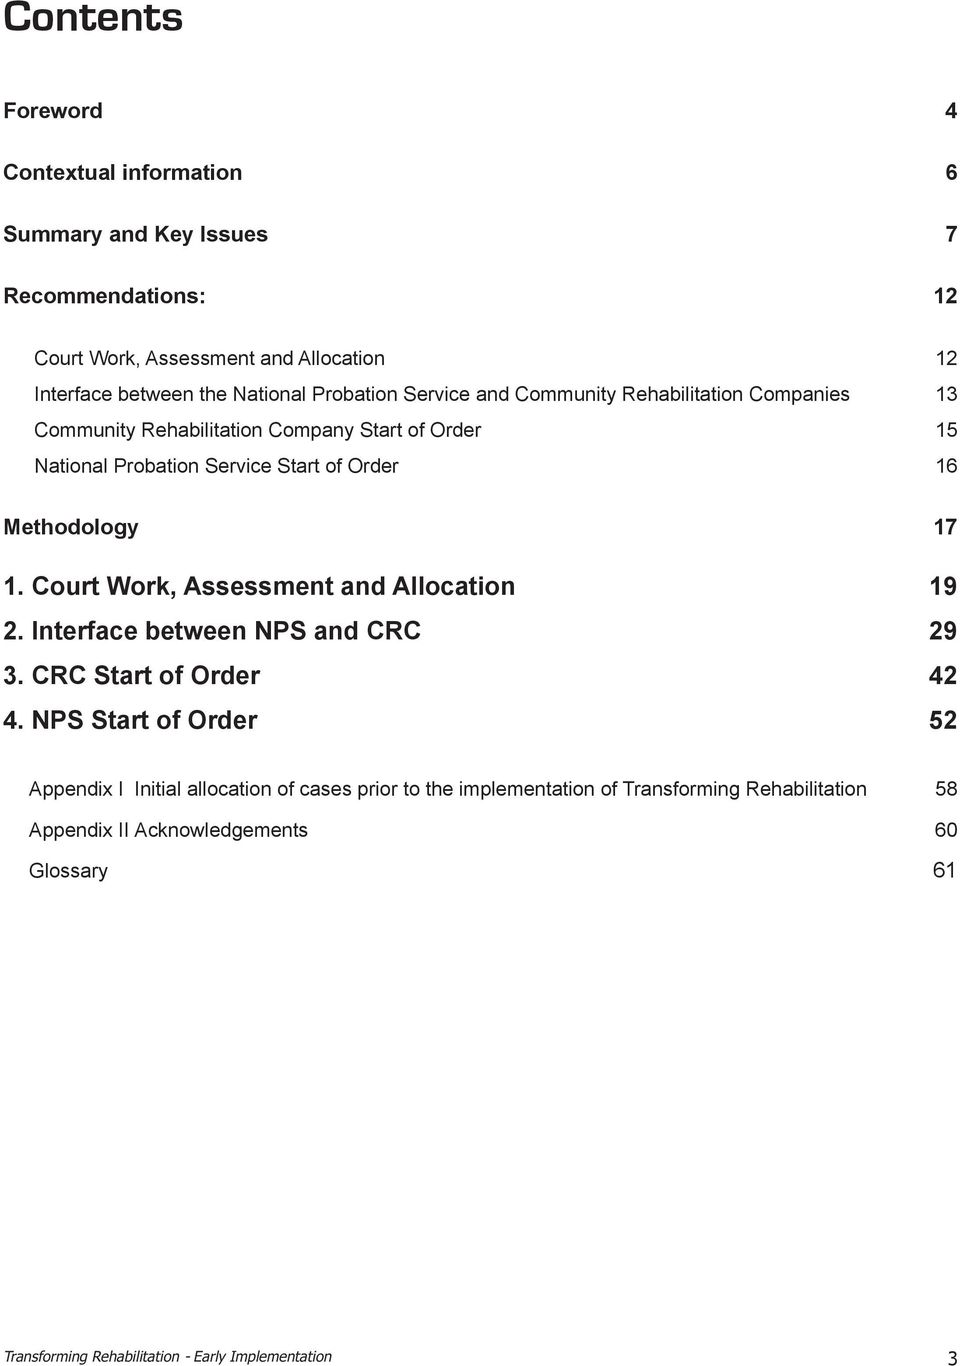 Methodology 17 1. Court Work, Assessment and Allocation 19 2. Interface between NPS and CRC 29 3. CRC Start of Order 42 4.